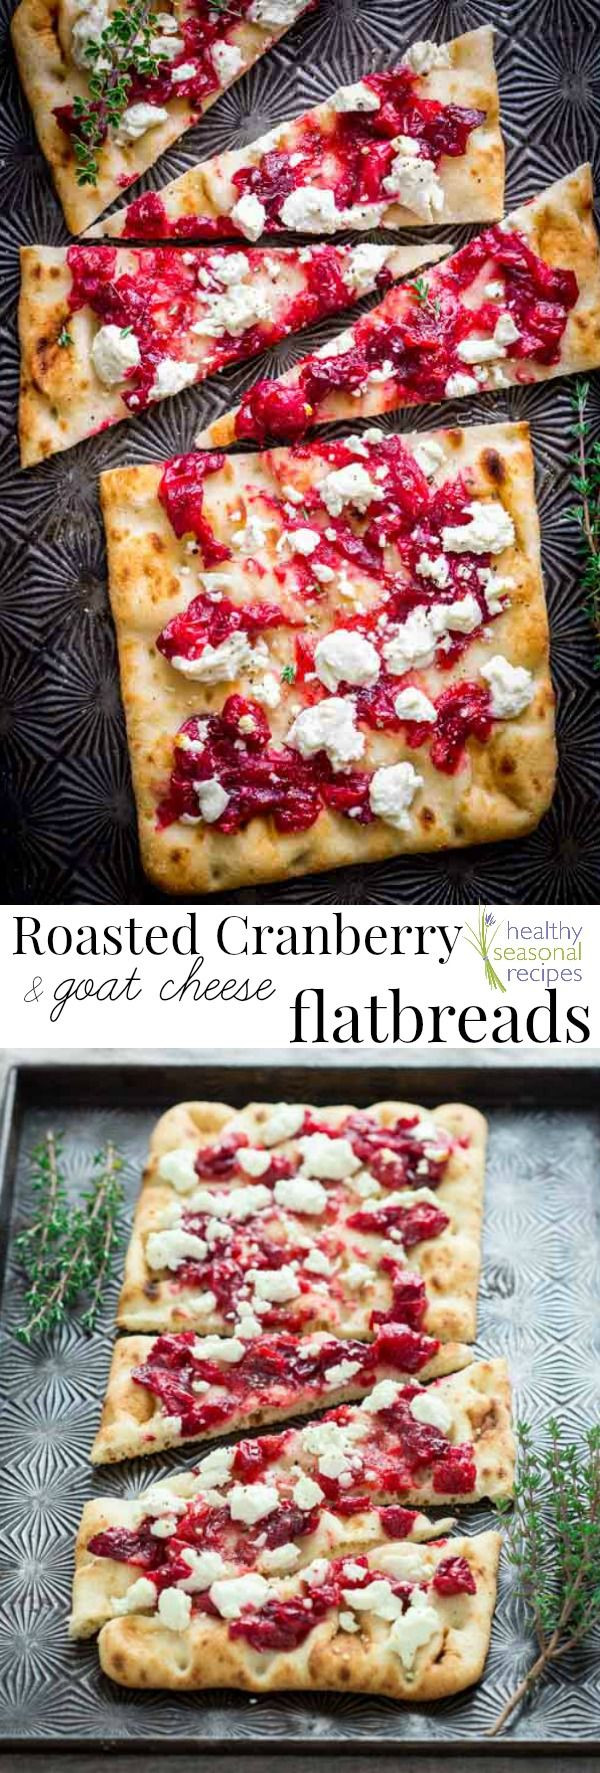 Christmas Party Appetizers Recipes  1000 ideas about Christmas Party Appetizers on Pinterest